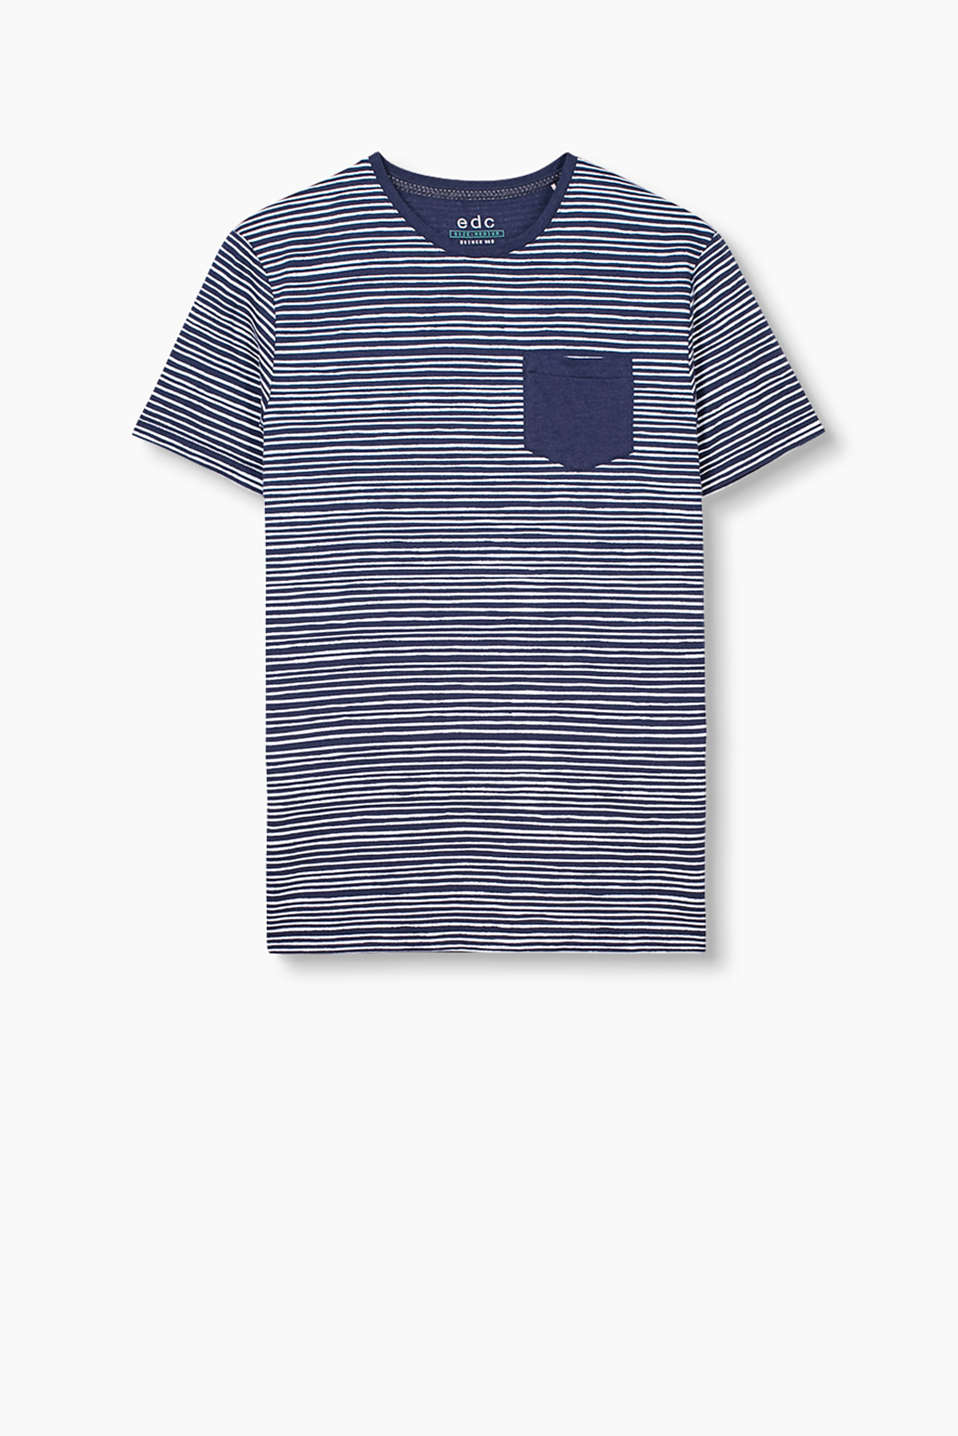 Cotton T-shirt with painted stripes and a breast pocket